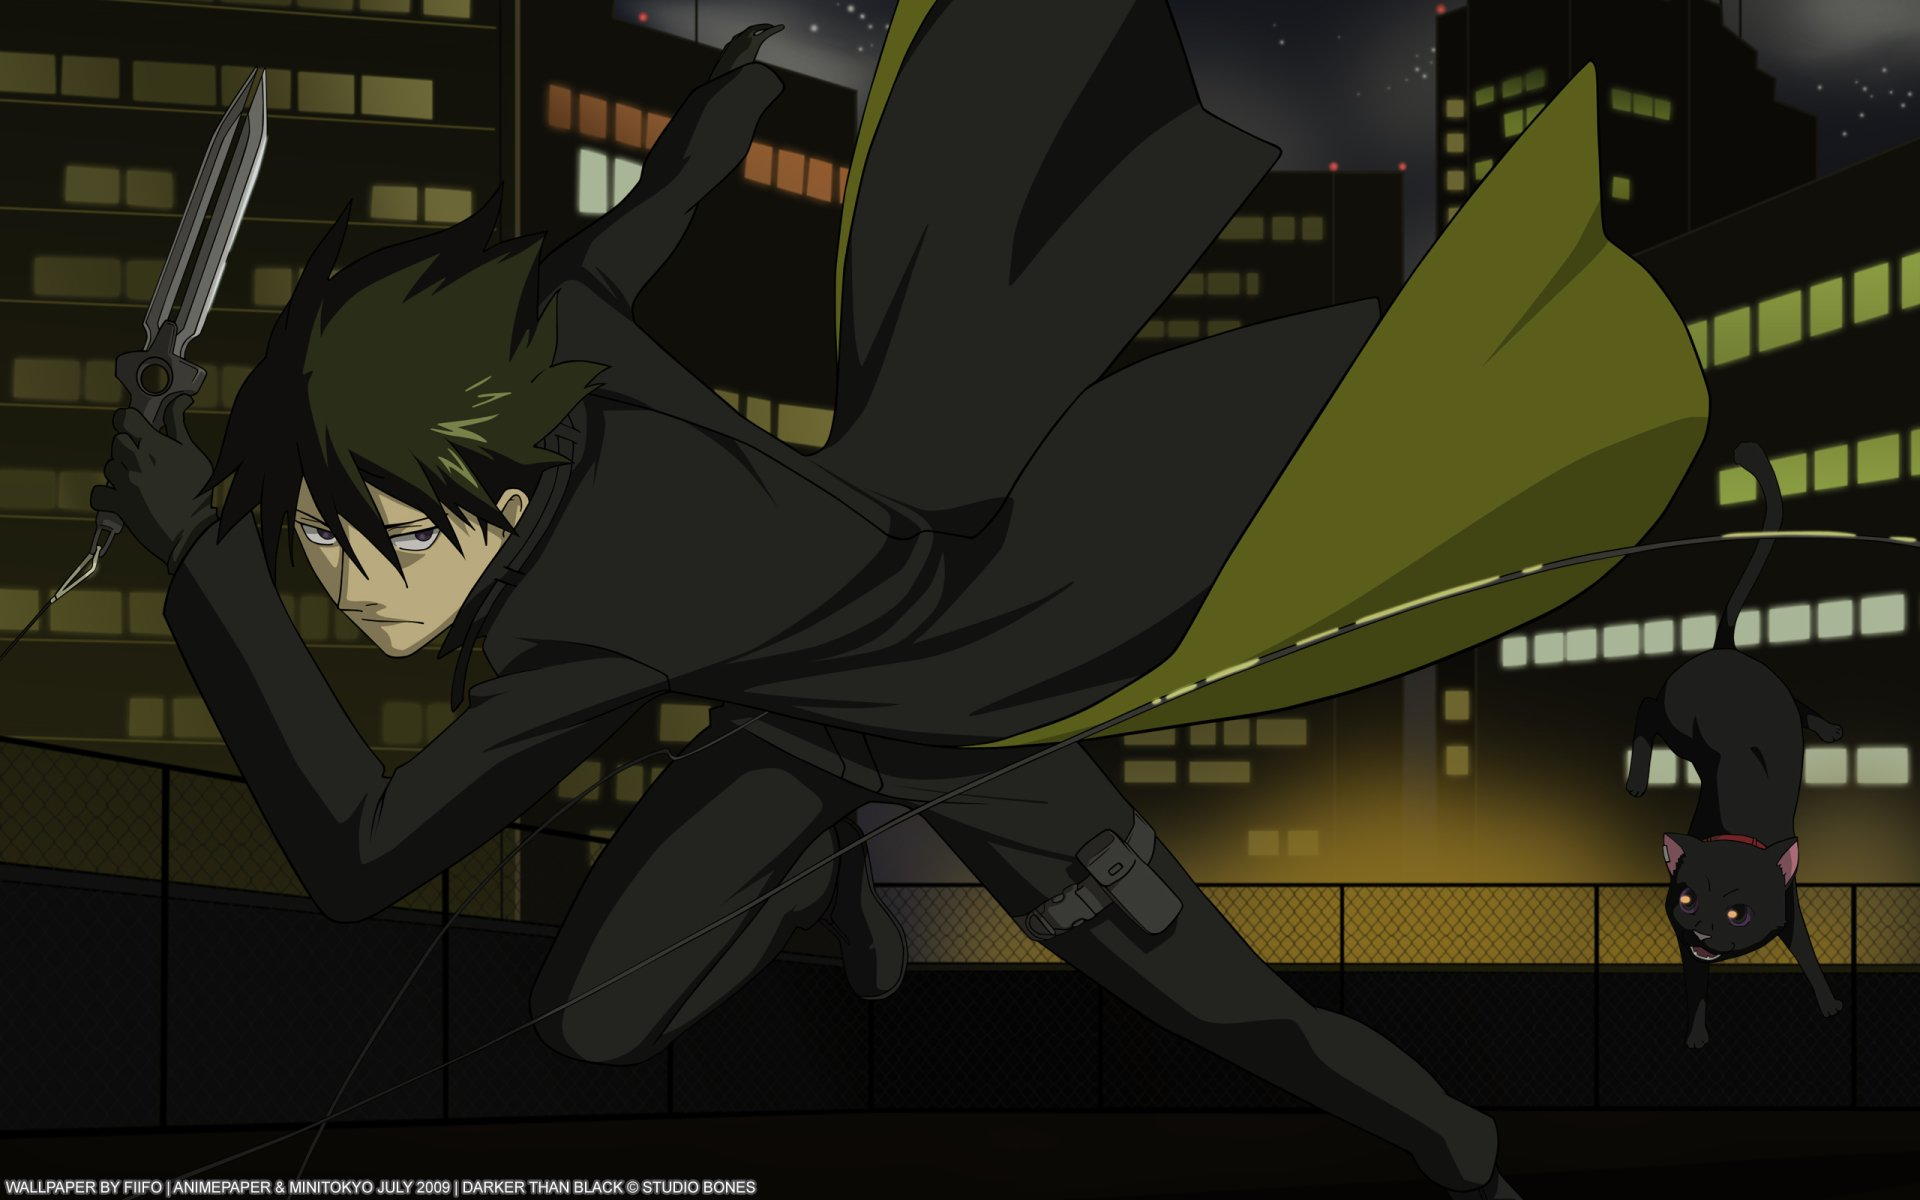 Anime - Darker Than Black  Hei (Darker than Black) Mao (Darker than Black) Wallpaper